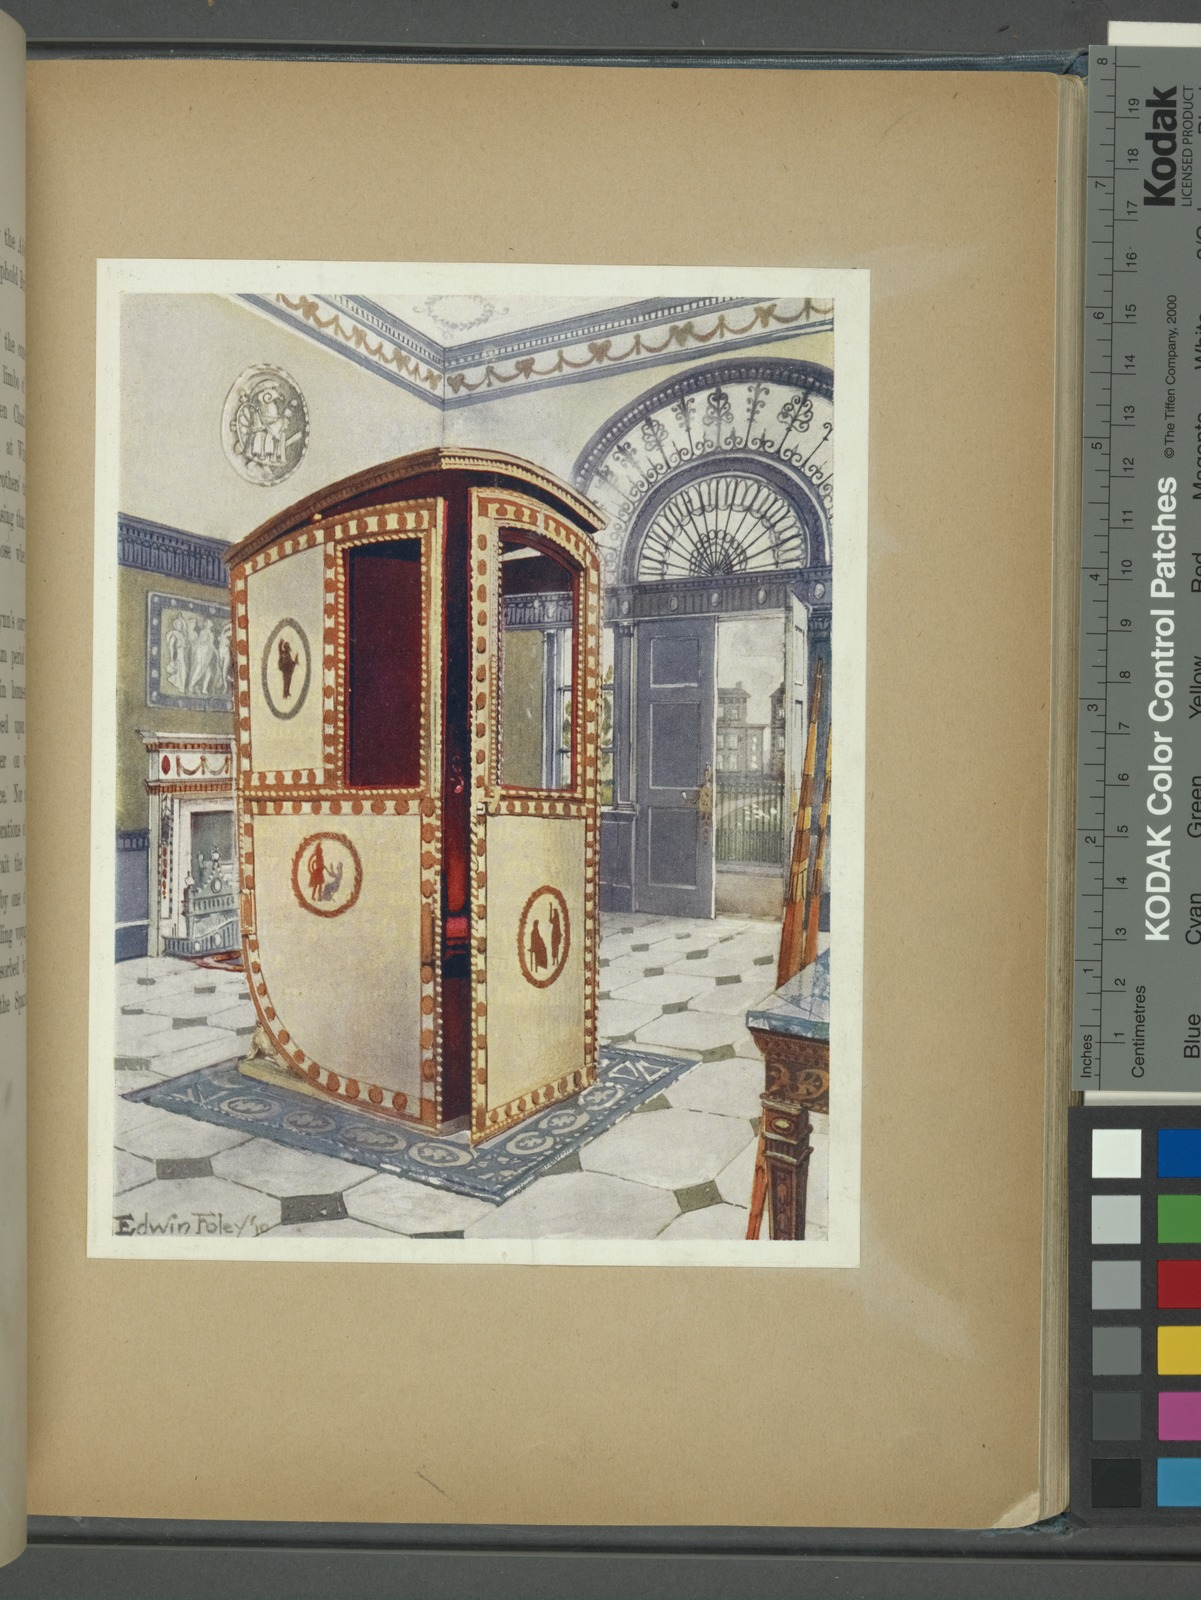 Painted and lacquered sedan chair with domed top. Designed by the Brothers Adam for Lady Watkin Williams Wynn. Now in the Bethnal Green Museum, ca. 1776.